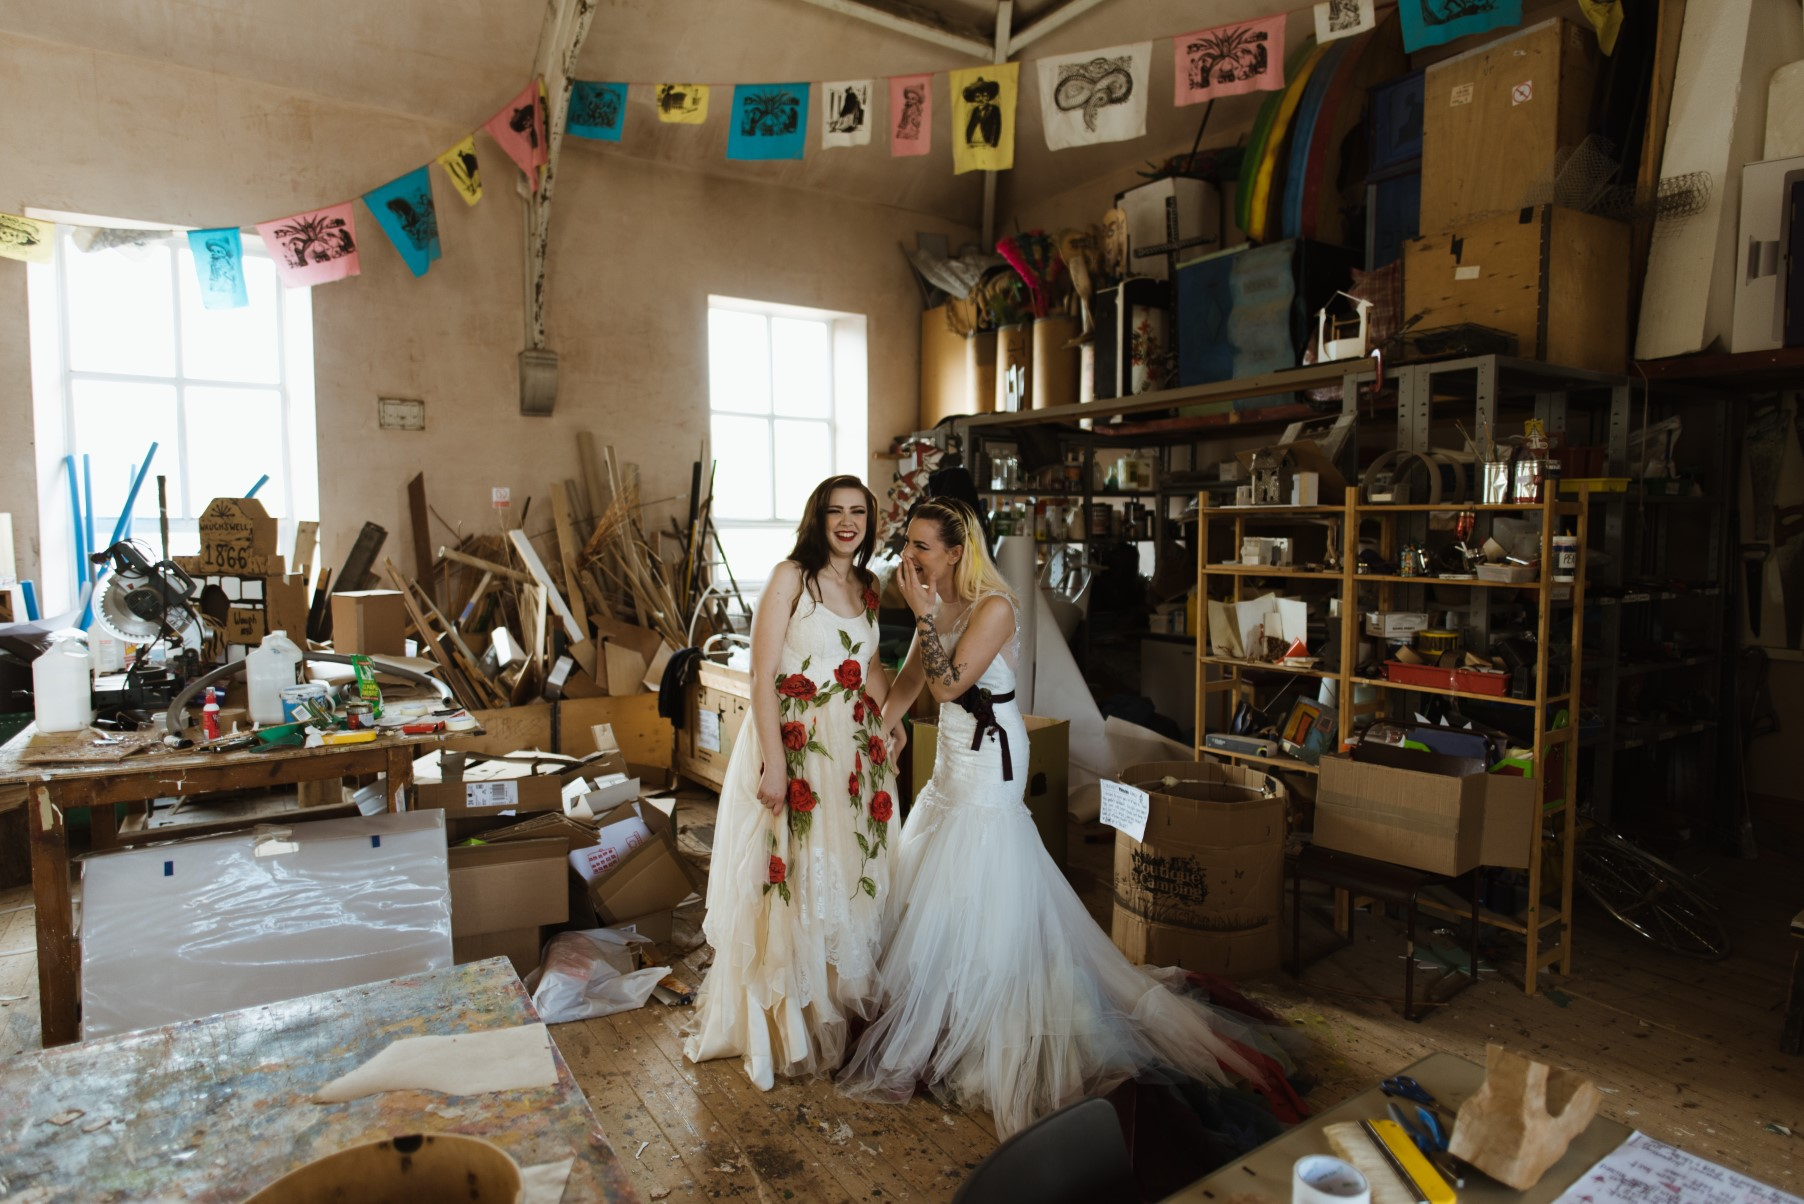 Eclectic Wedding- Alexandra Holt Photography- The Boo Theatre- Unconventional Wedding- Unique Wedding- Quirky Wedding- Halloween Wedding- Unique Bridalwear- Alternative Bridalwear- Unique Wedding Dress- Colourful Wedding- Alternative Wedding- Alternative Bouquet